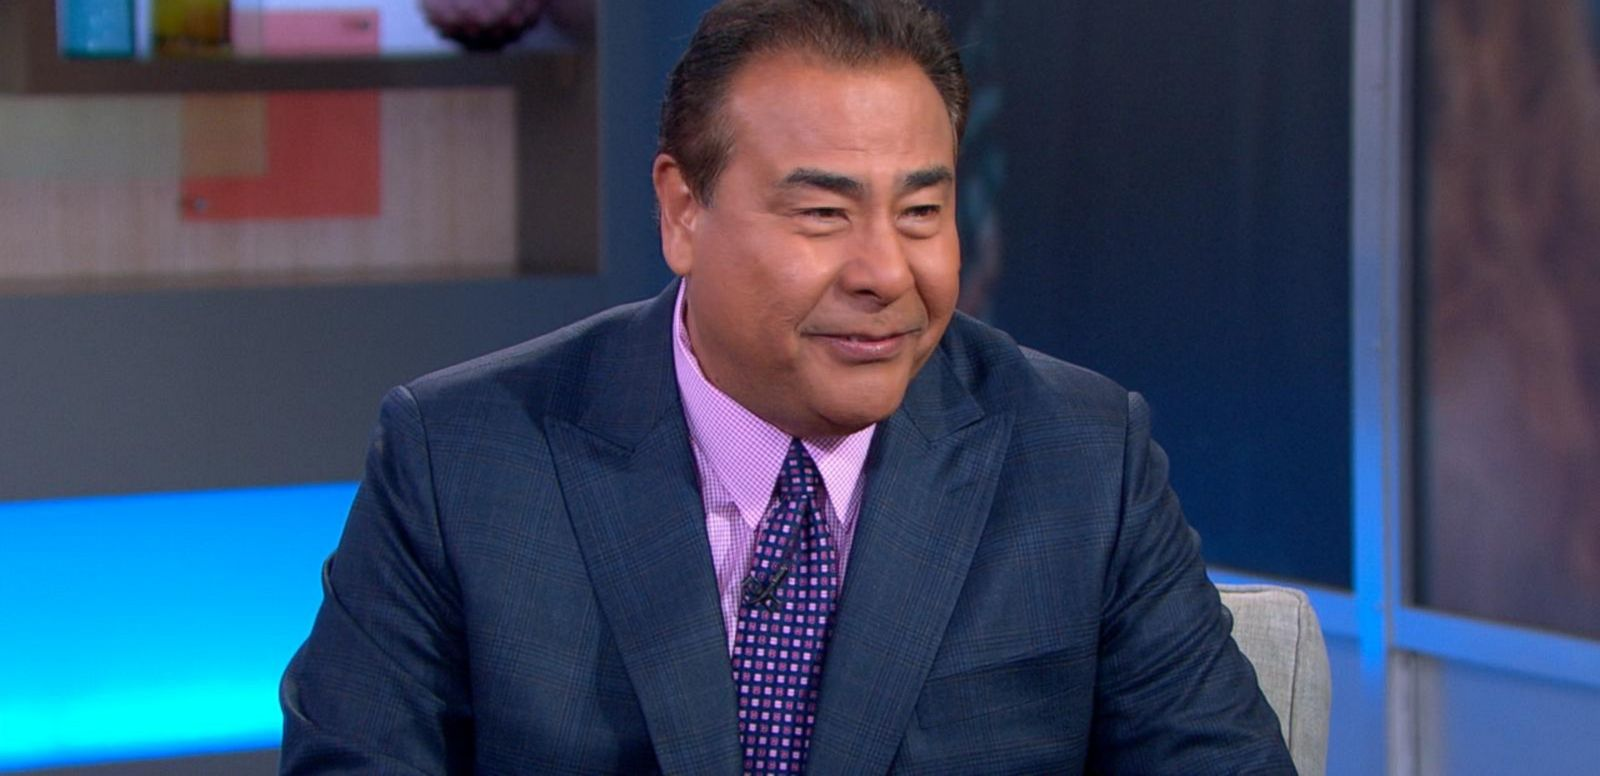 VIDEO: John Quinones Celebrates the 'What Would You Do' 10th Anniversary